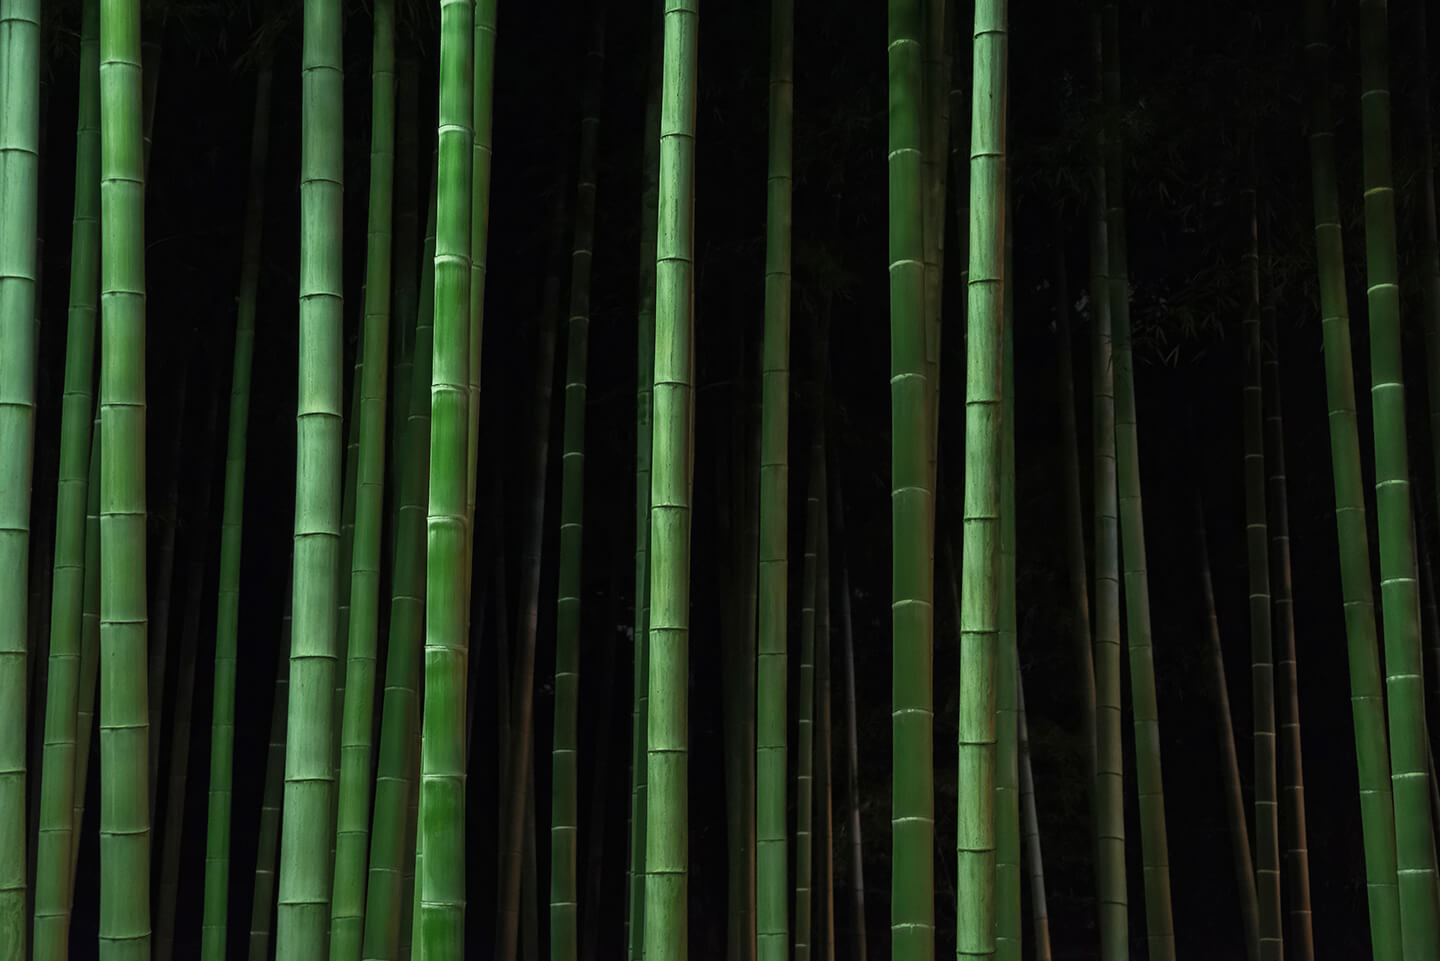 A lively green bamboo forest.